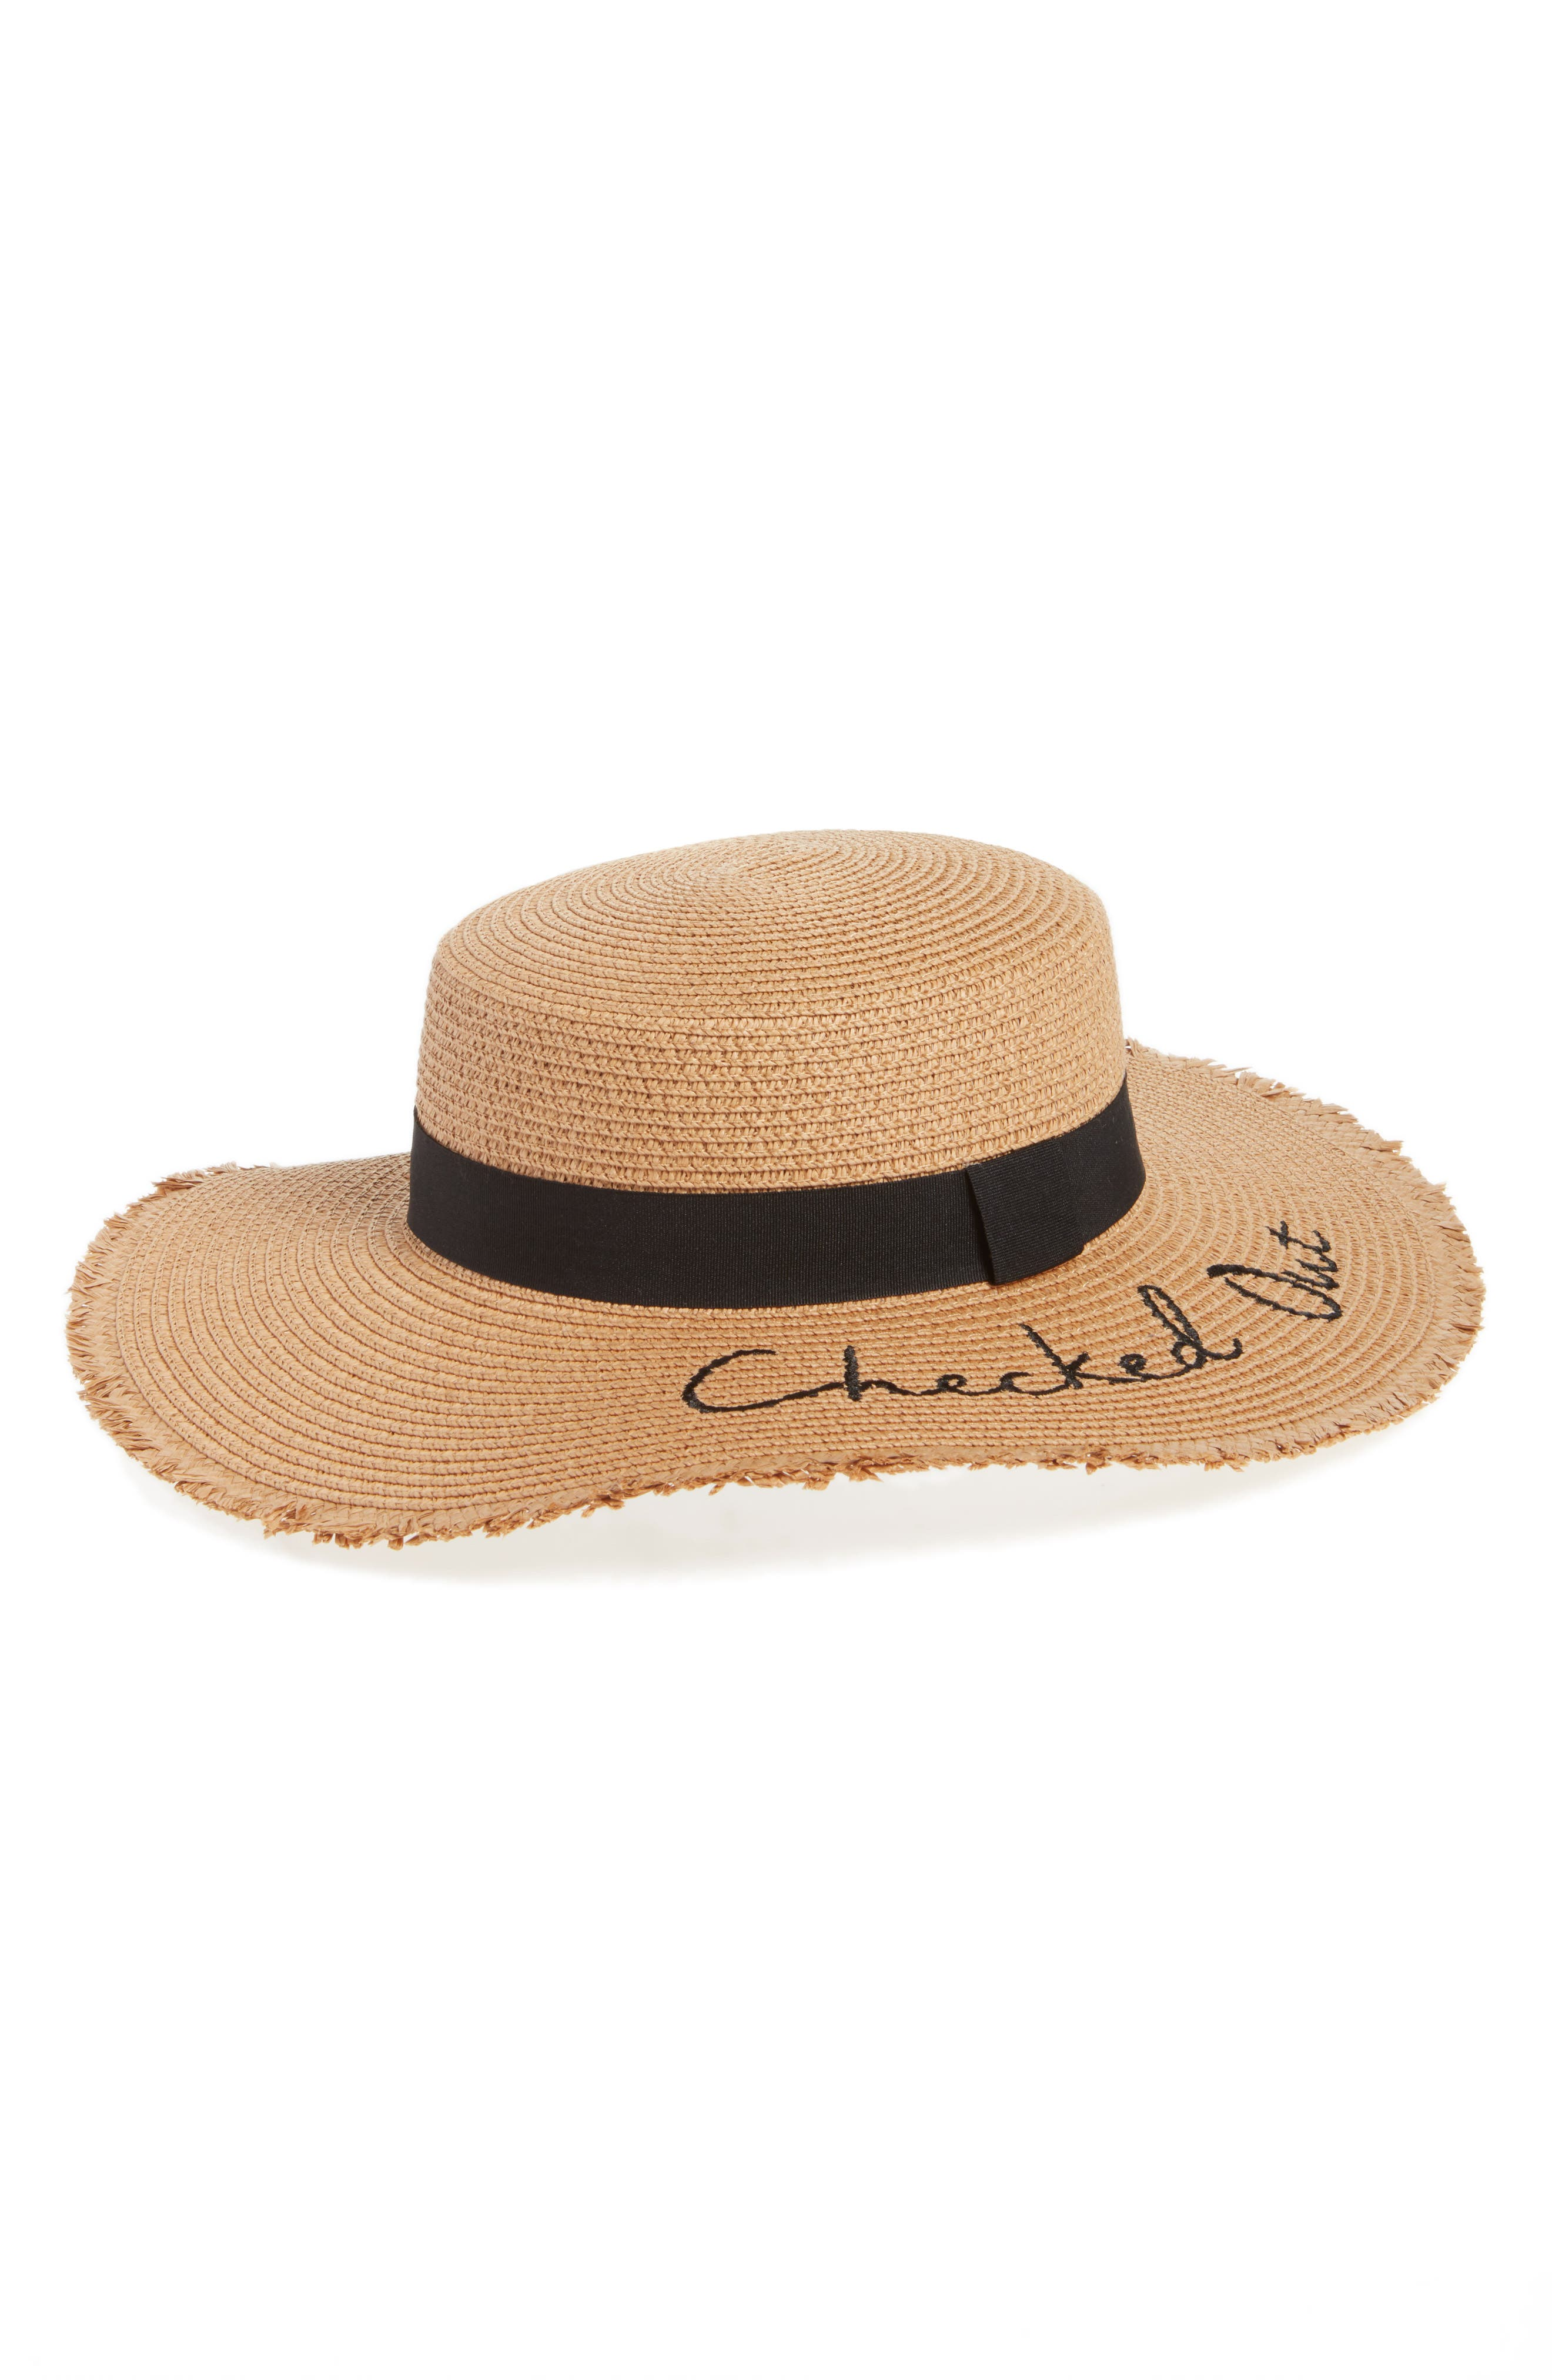 BP. Verbiage Frayed Edge Straw Boater Hat